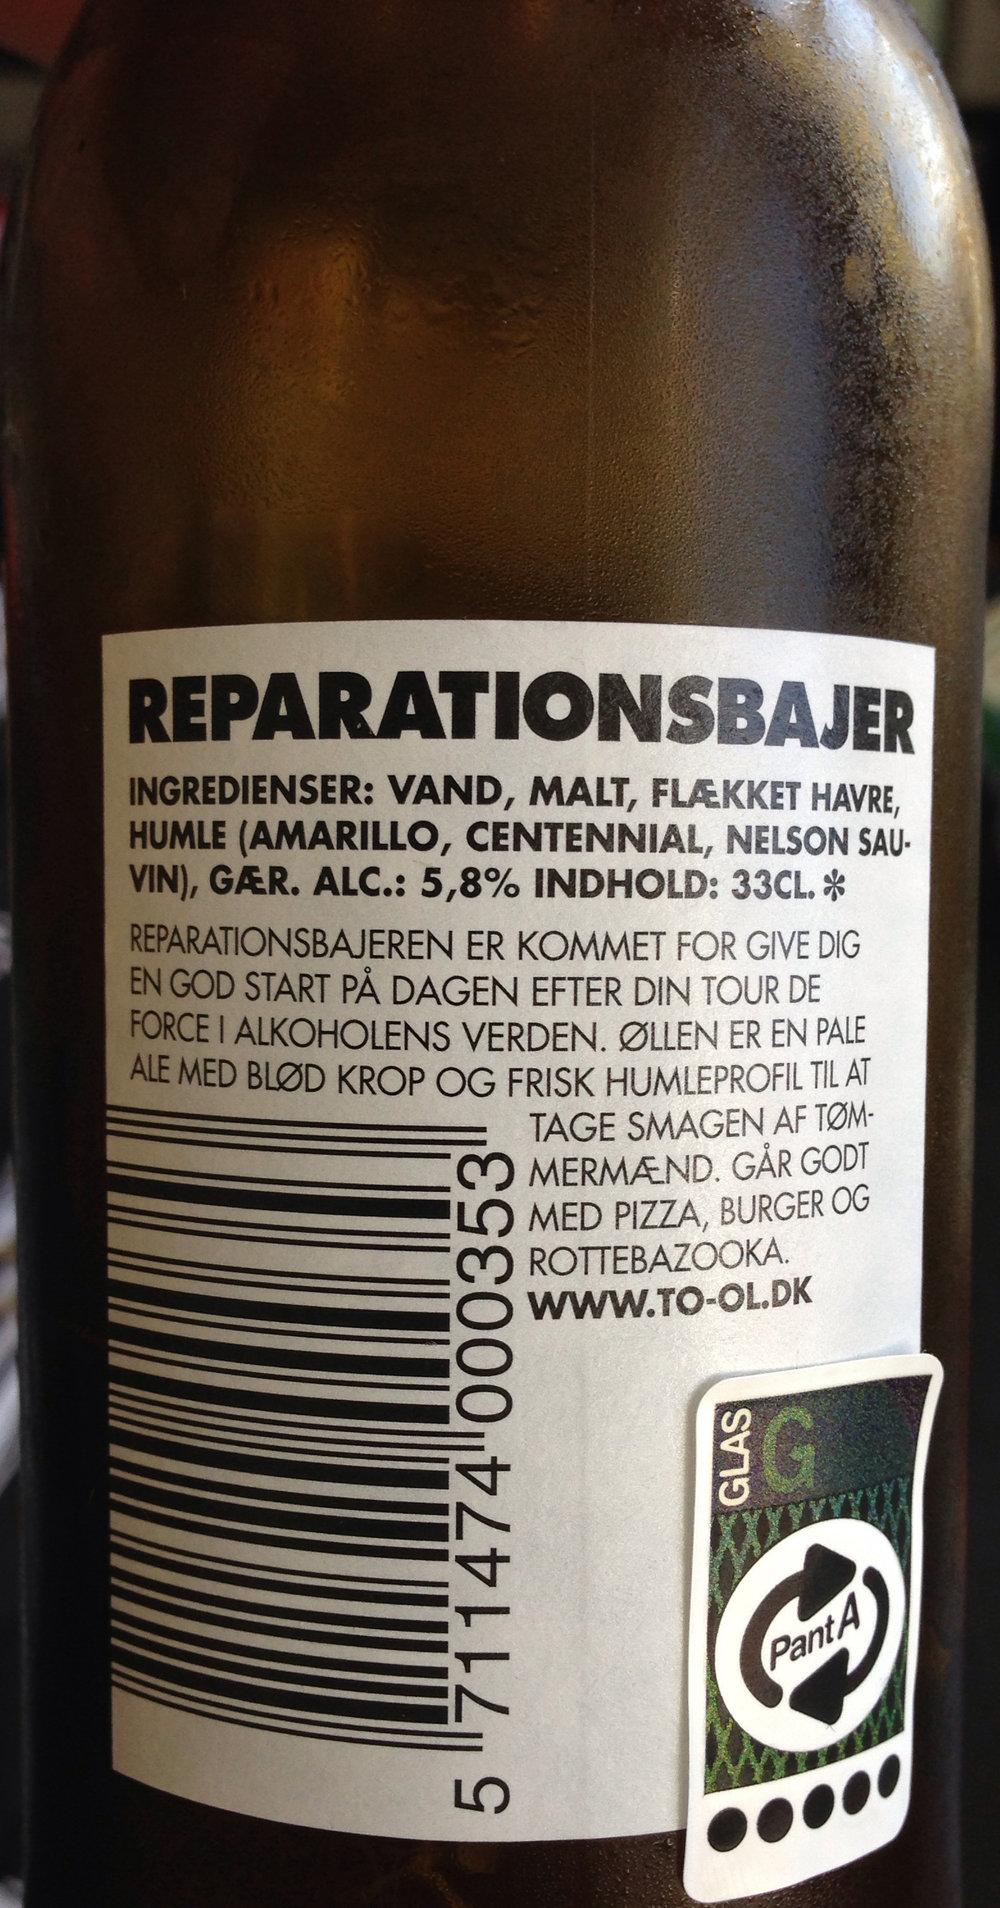 to-ol-reparationsbajer-label.jpg